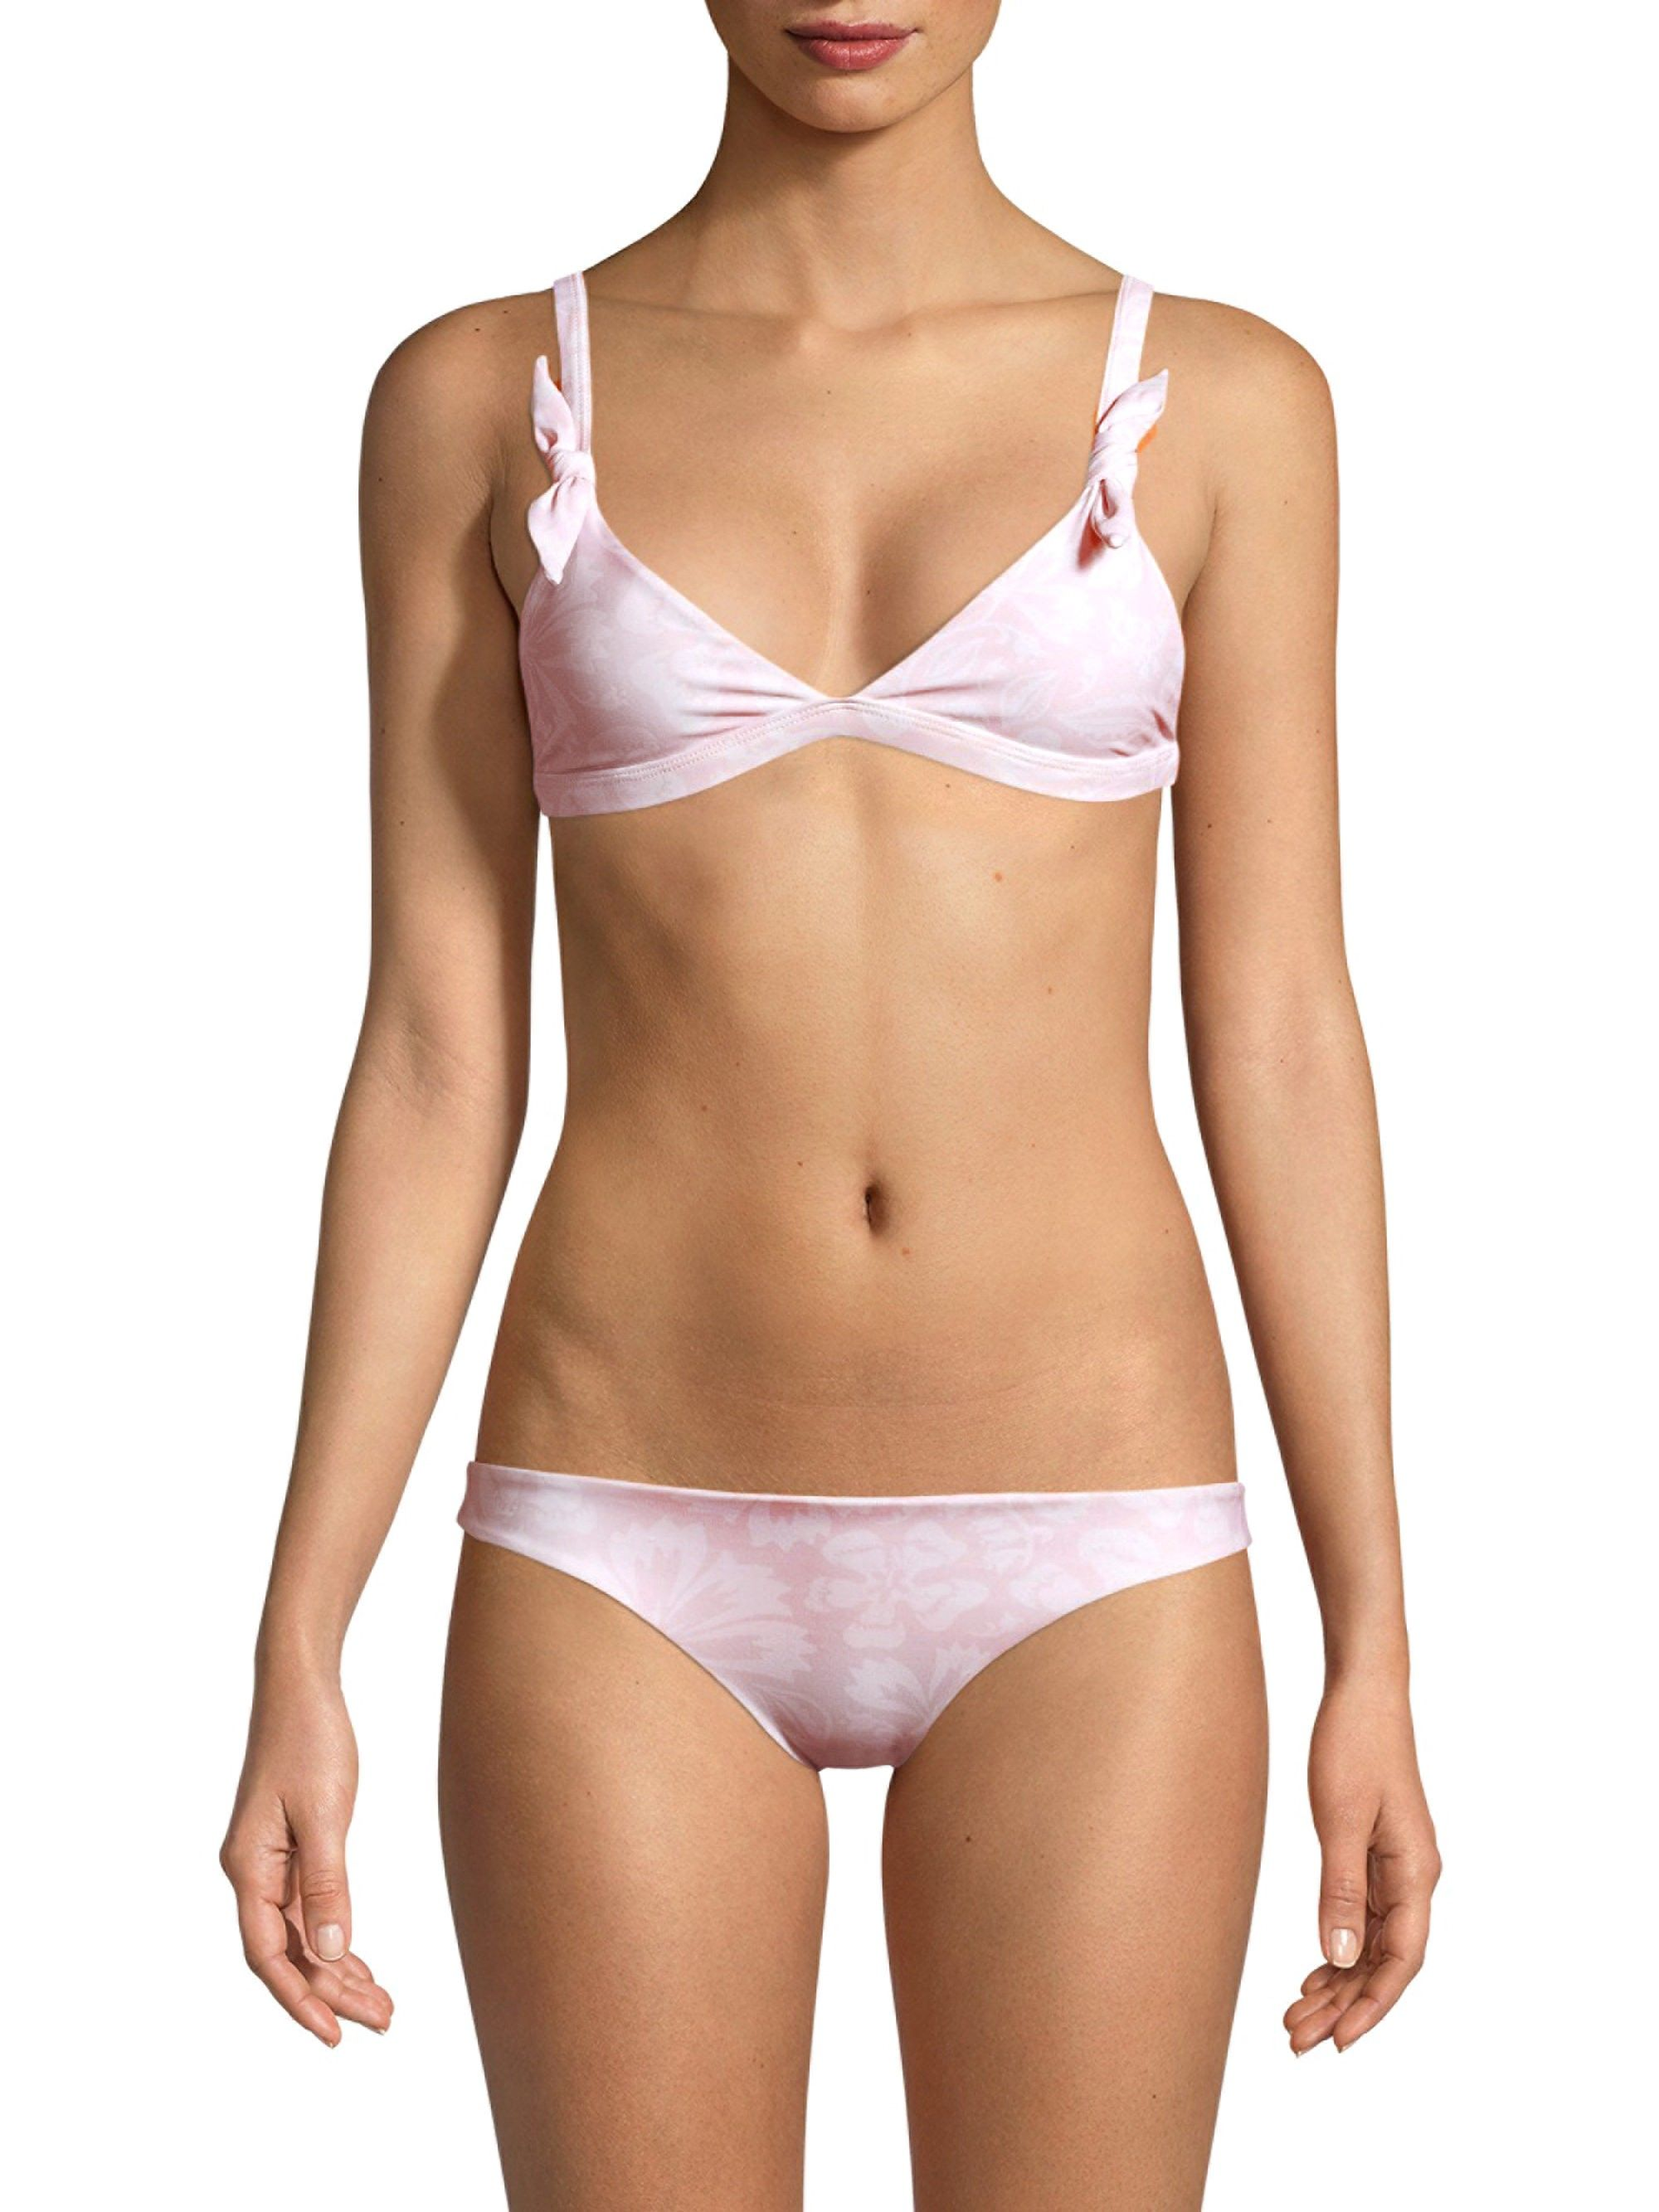 a9fb4e64f6650 Mikoh Swimwear Bali Triangle Bikini Top - Cloud Pink X-Large